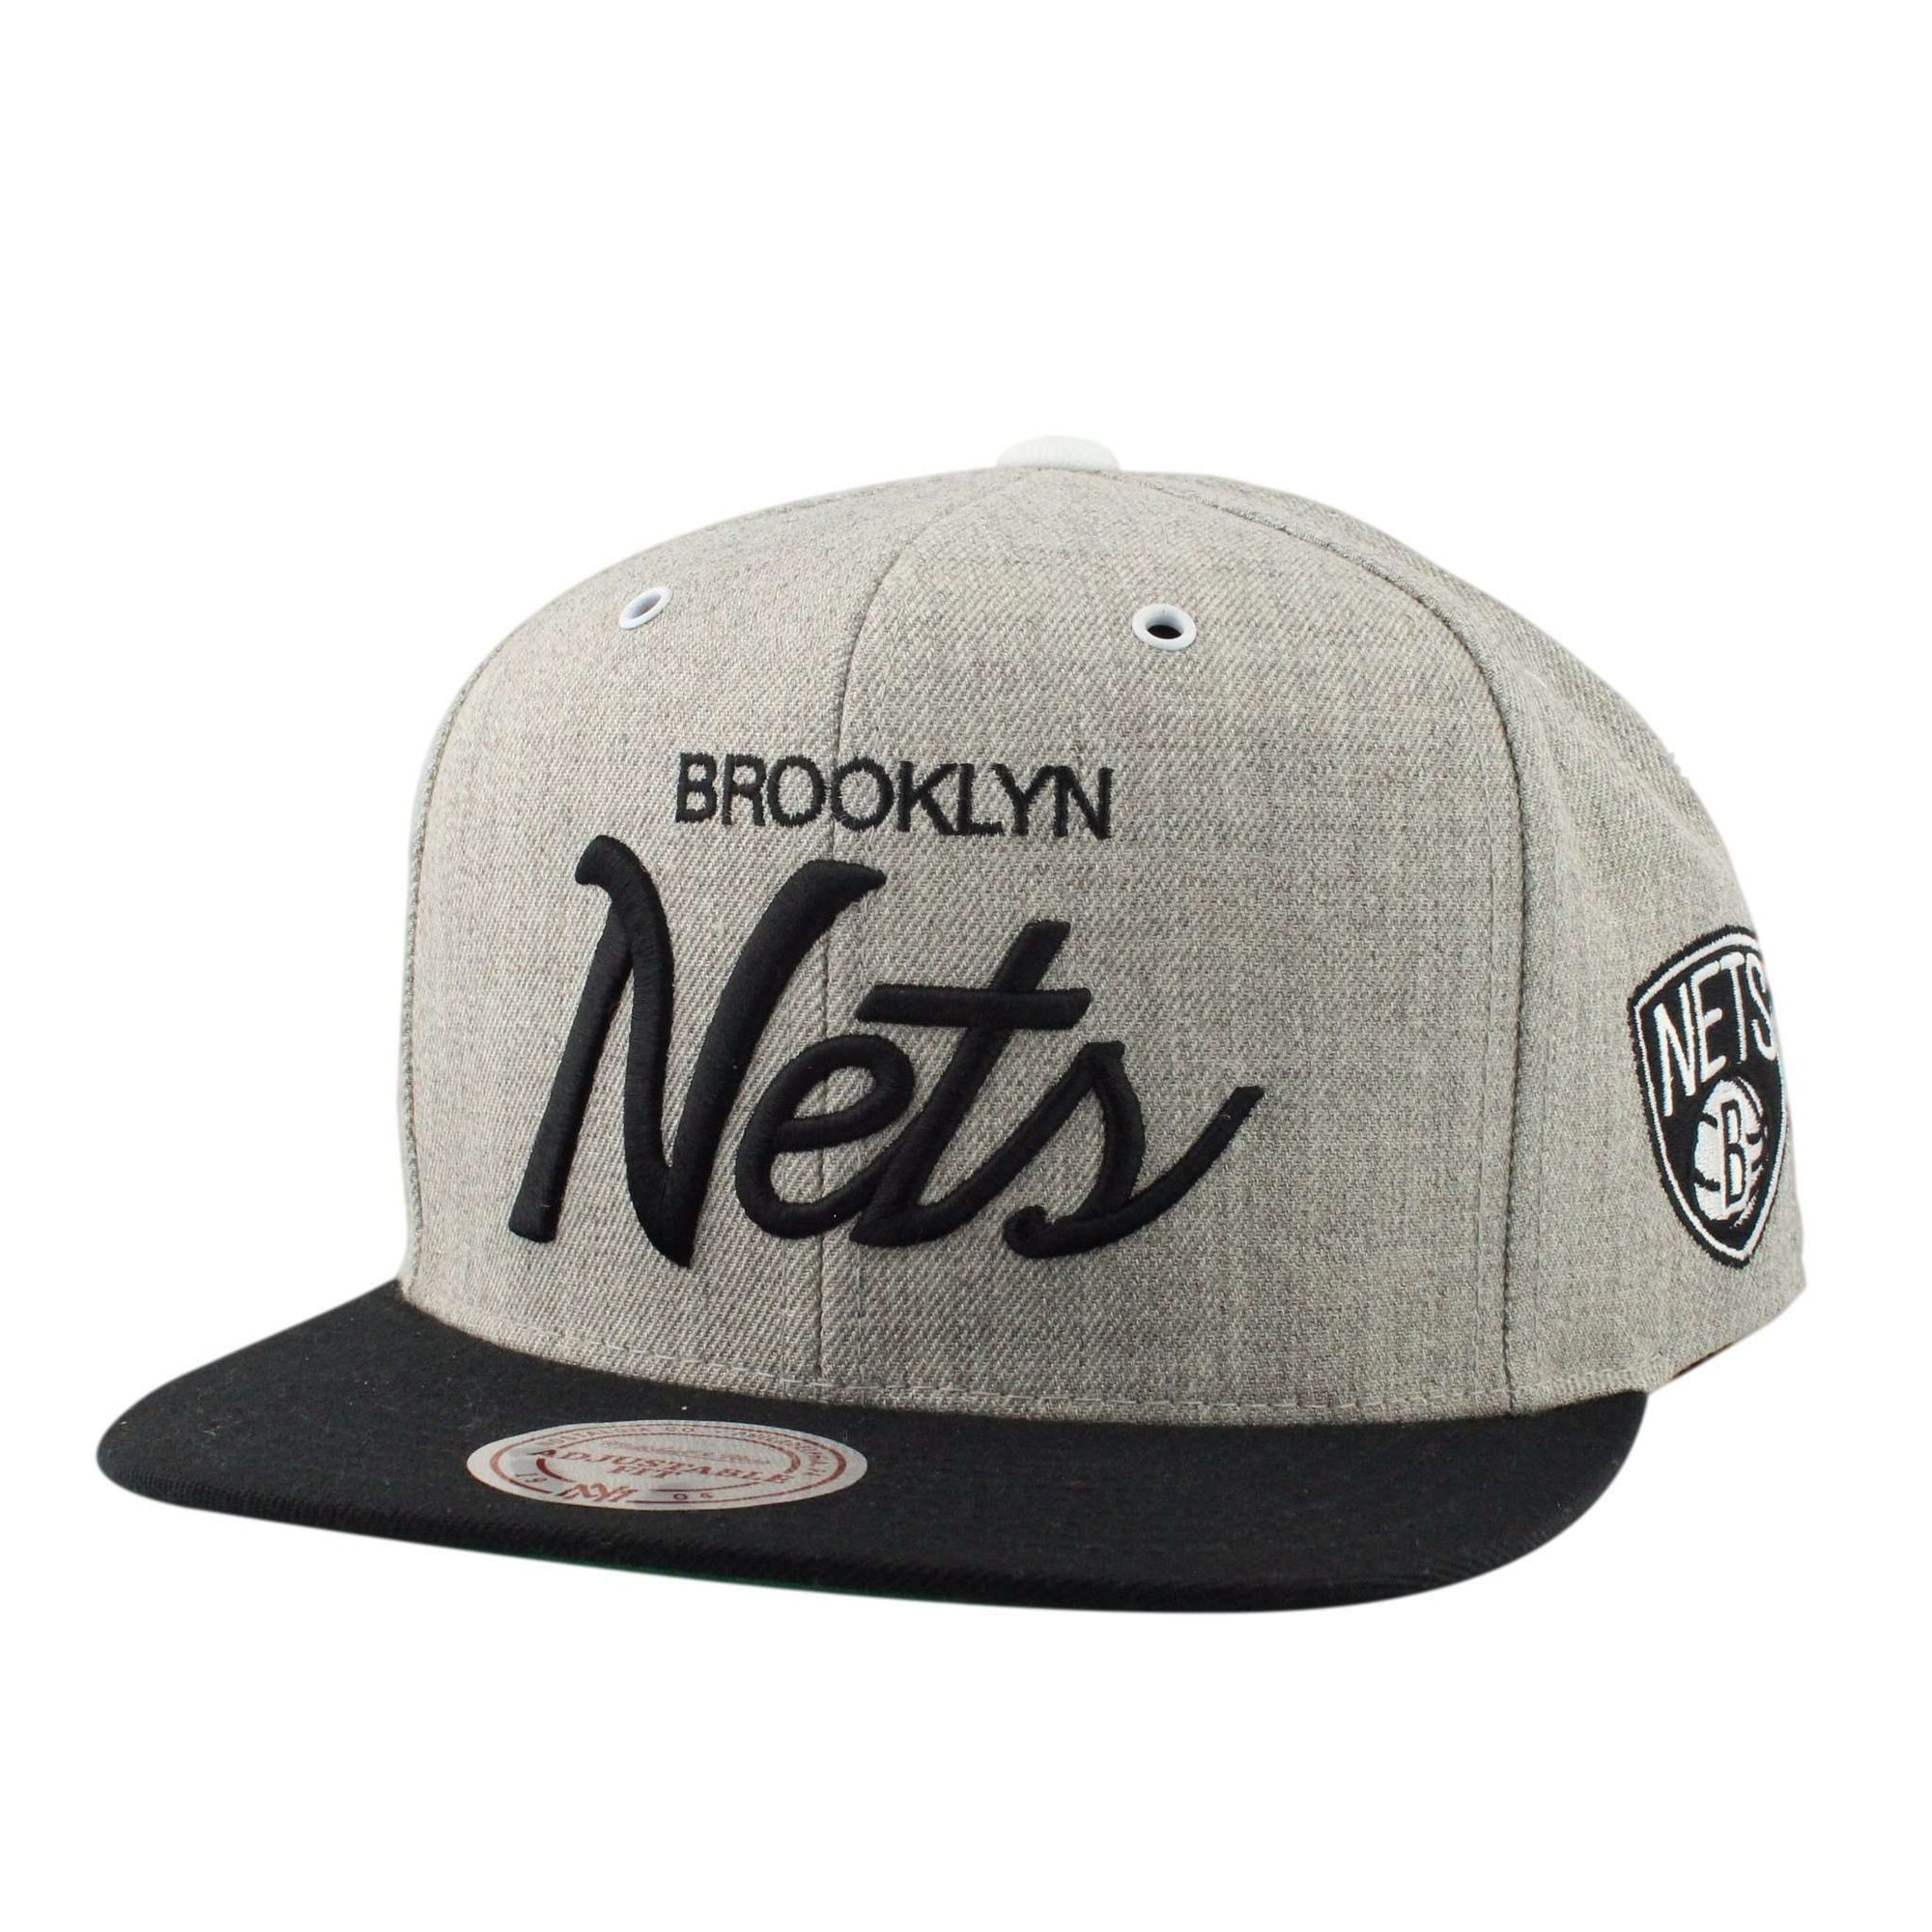 official photos b2014 02dd1 Mitchell and Ness Brooklyn Nets Special Script Heather Gray Black Snapback